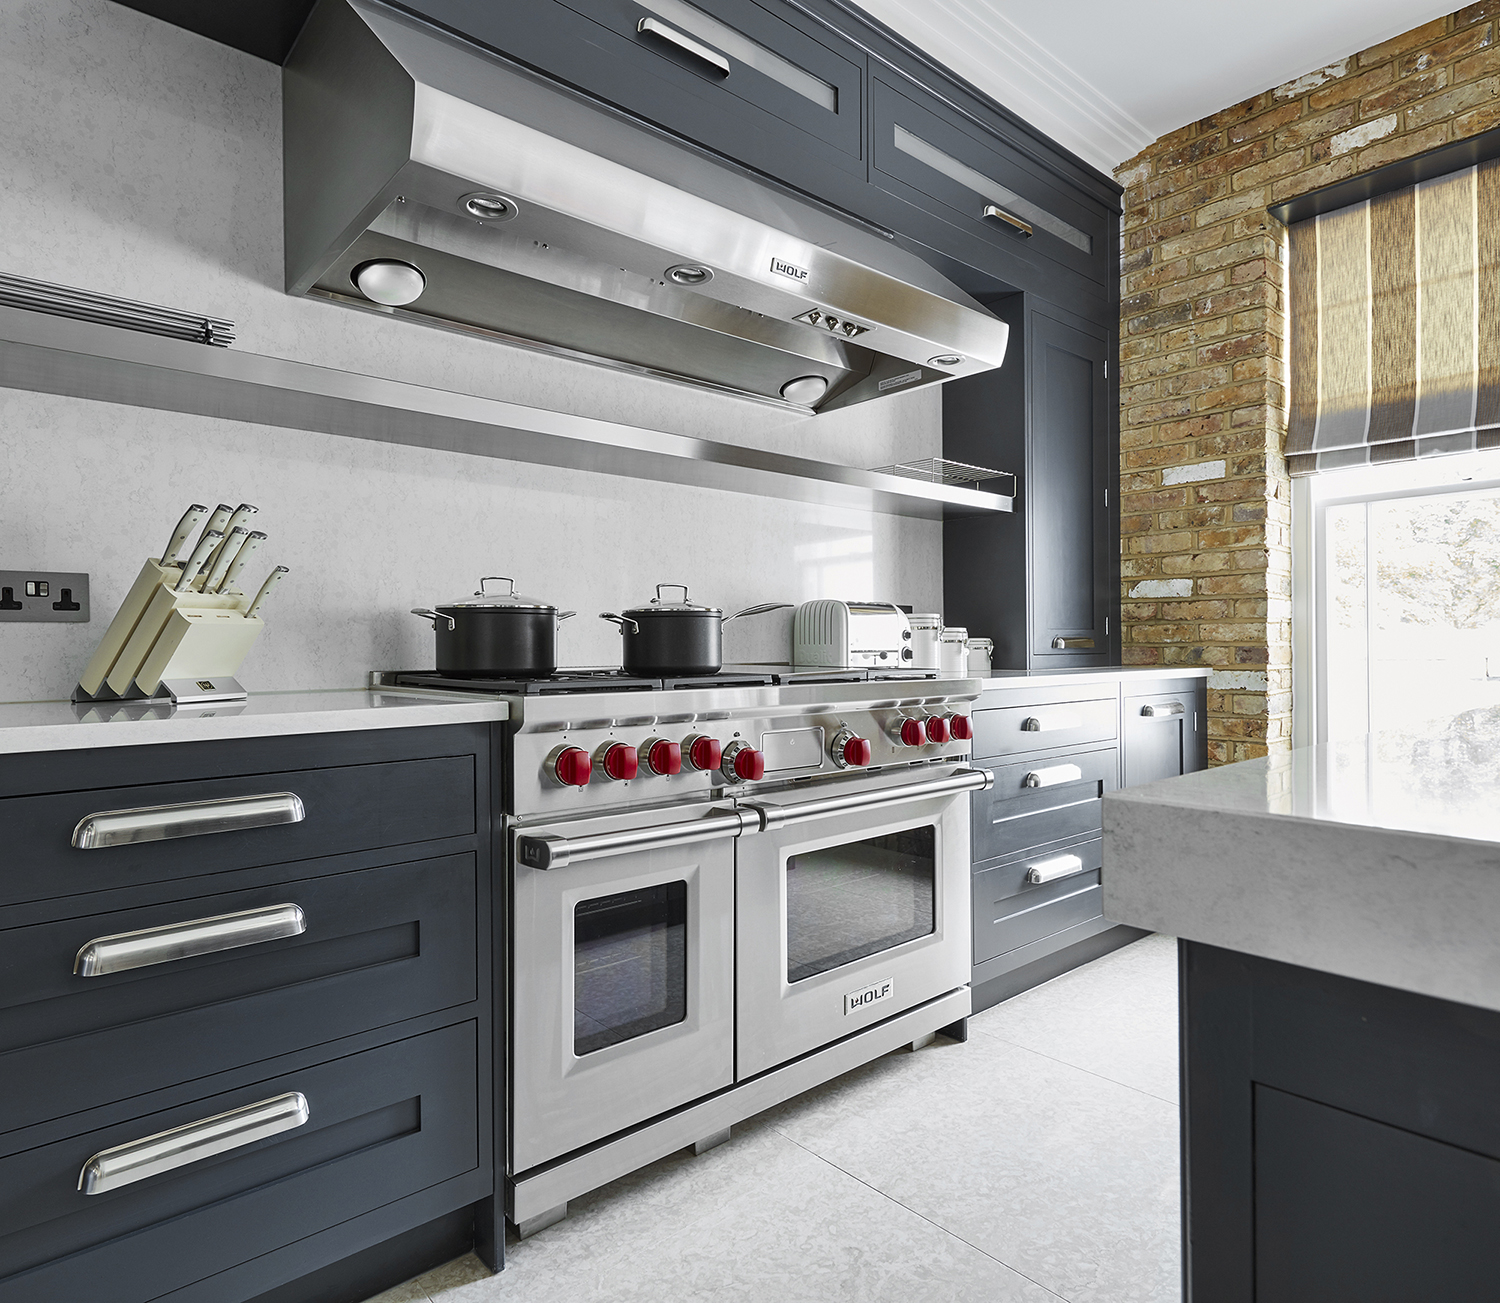 gray quartz backsplash and matching countertops with red brick kitchen accent wall